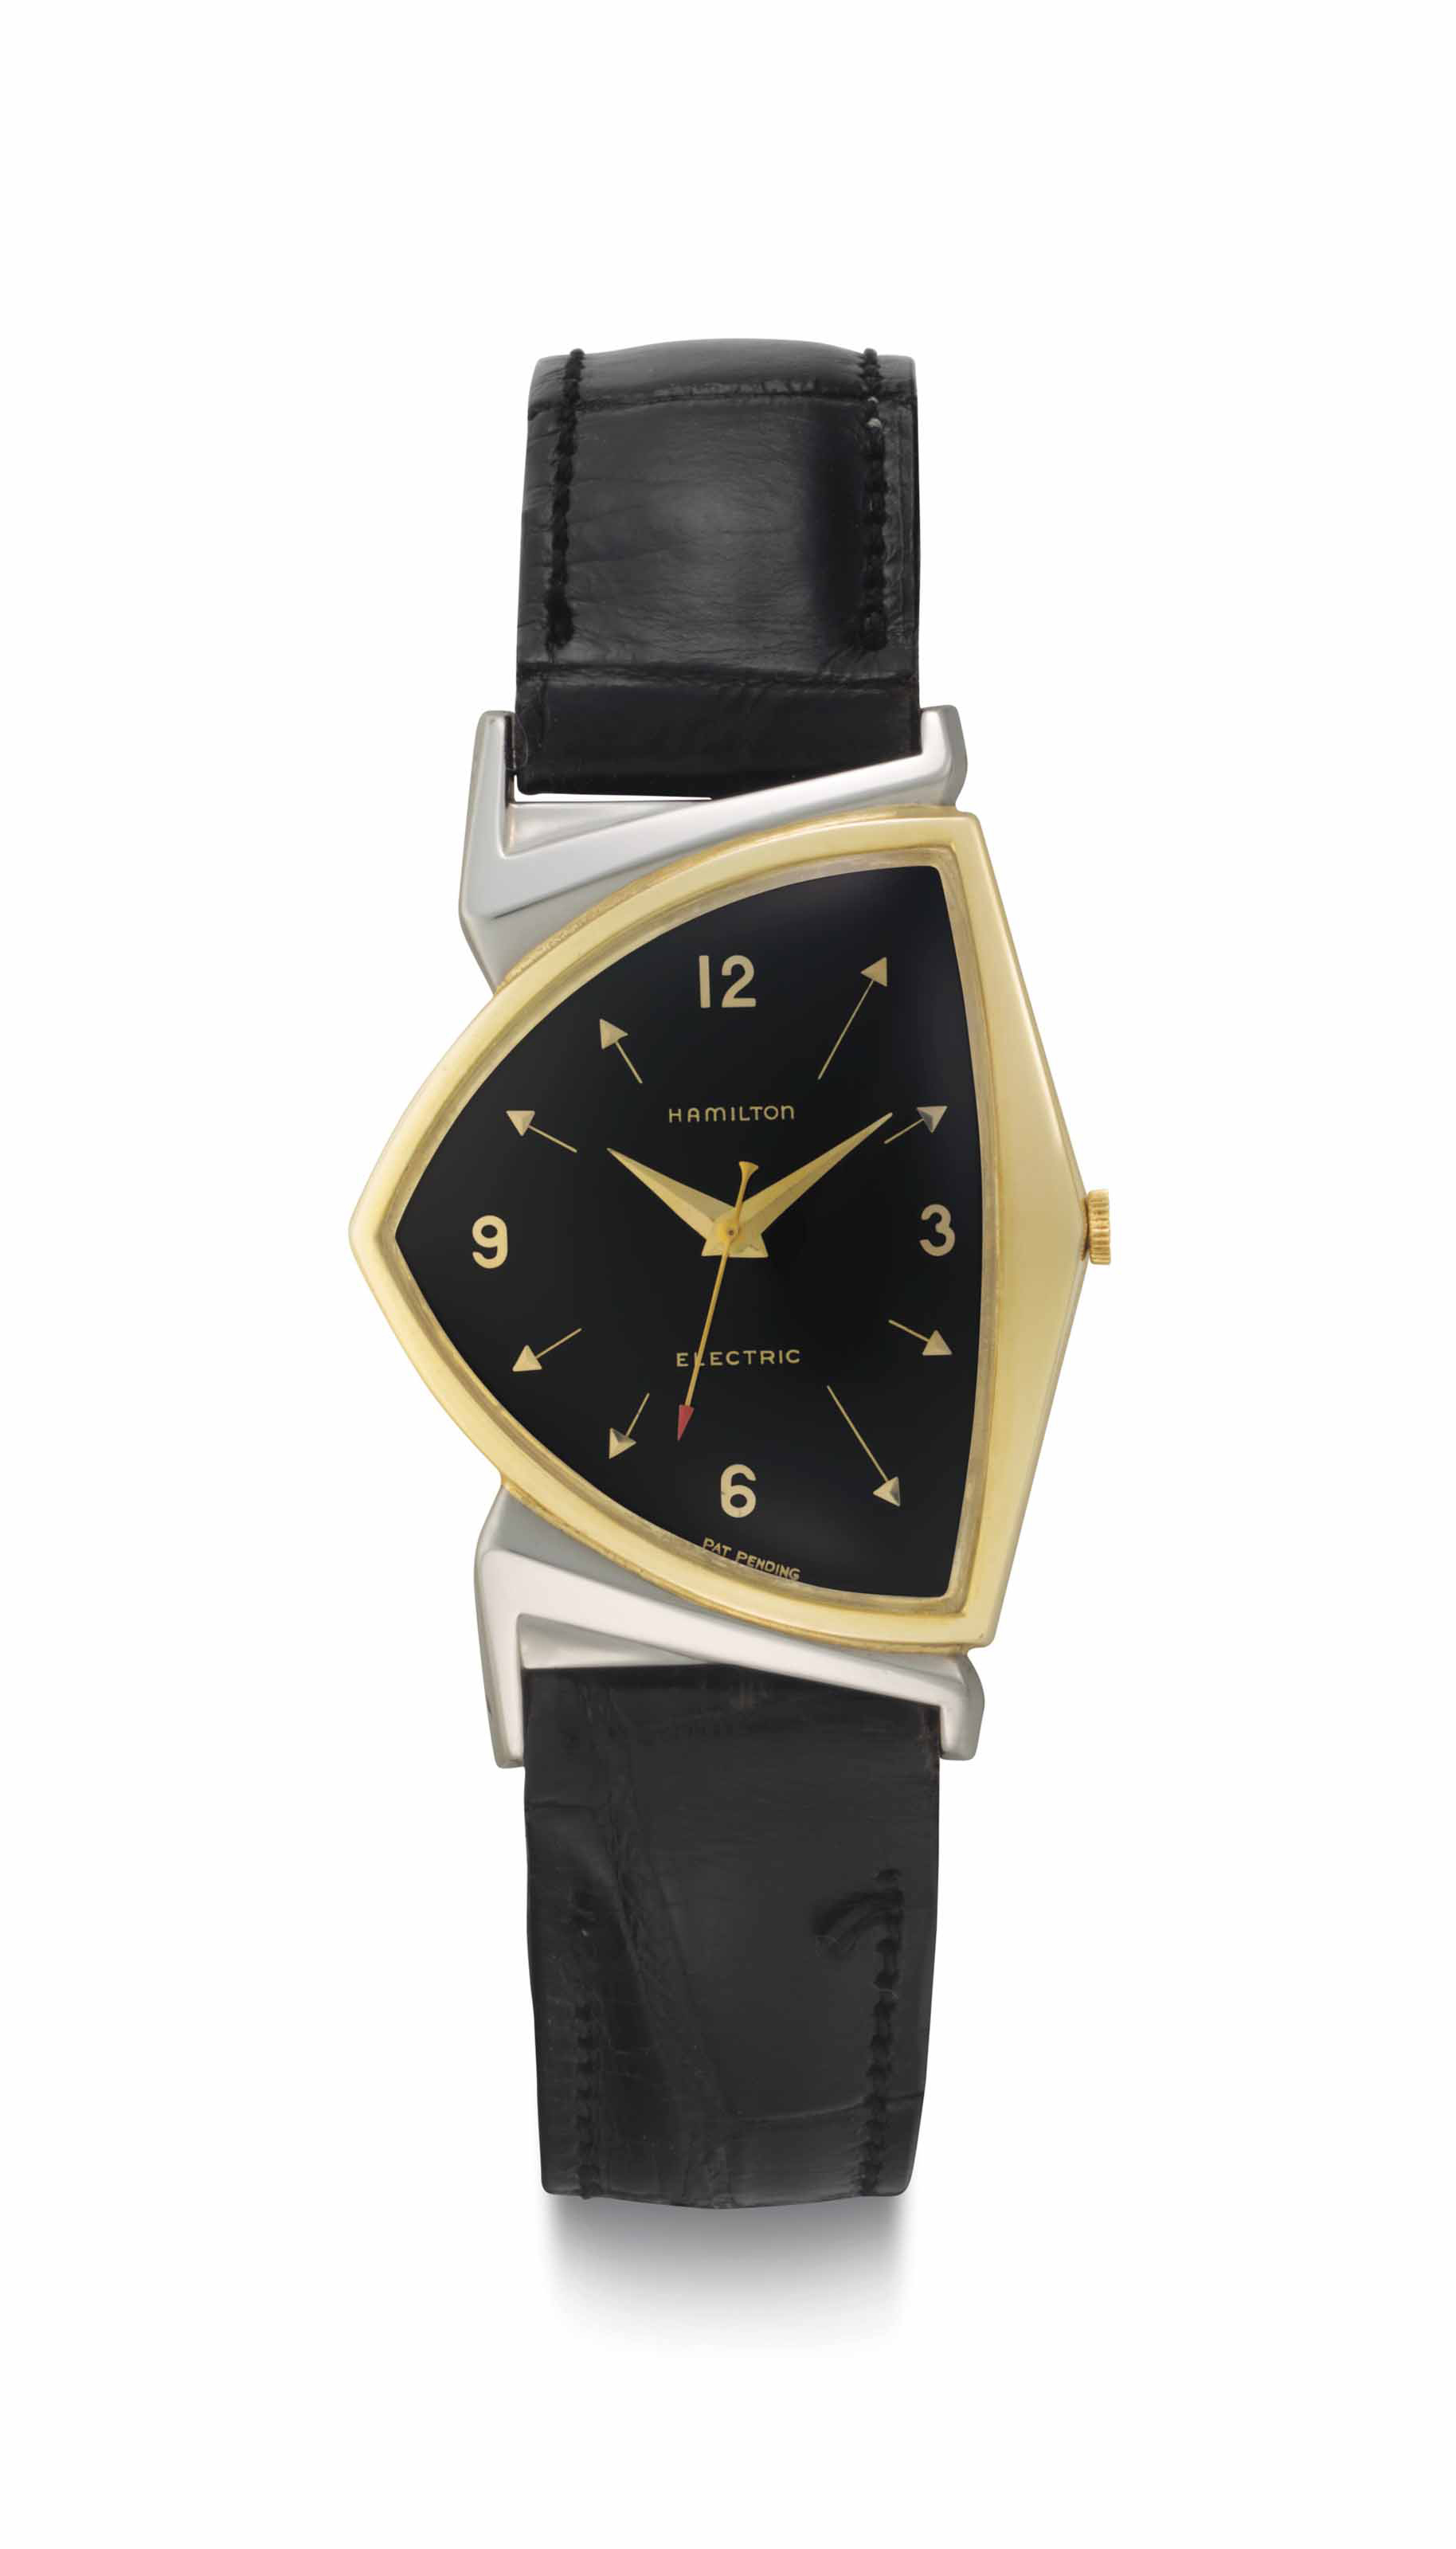 Hamilton. A Fine and Historically Important Two-Tone Gold Filled Asymmetrical Wristwatch with Center Seconds and Black Dial, Belonging to the 36th President of the United States, Lyndon B. Johnson